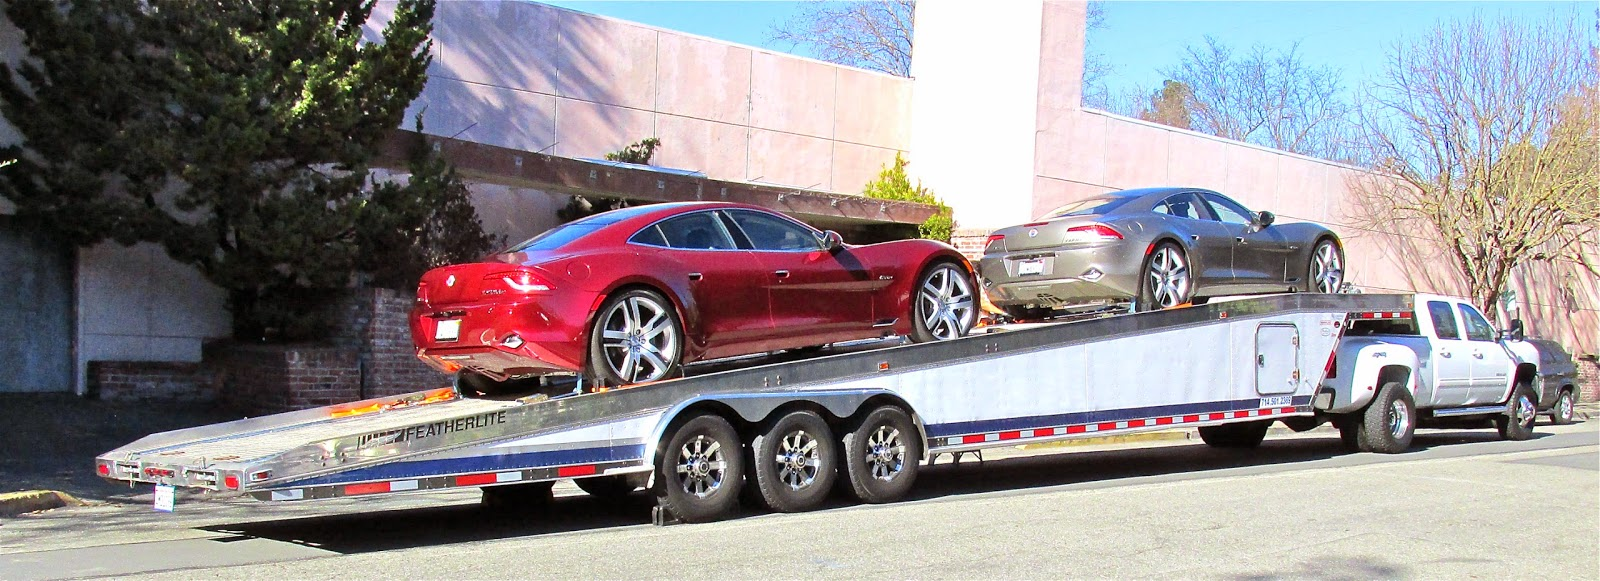 Car Hauler News Awesome Pics Of Old Cars Tied Down To A Wedge Car